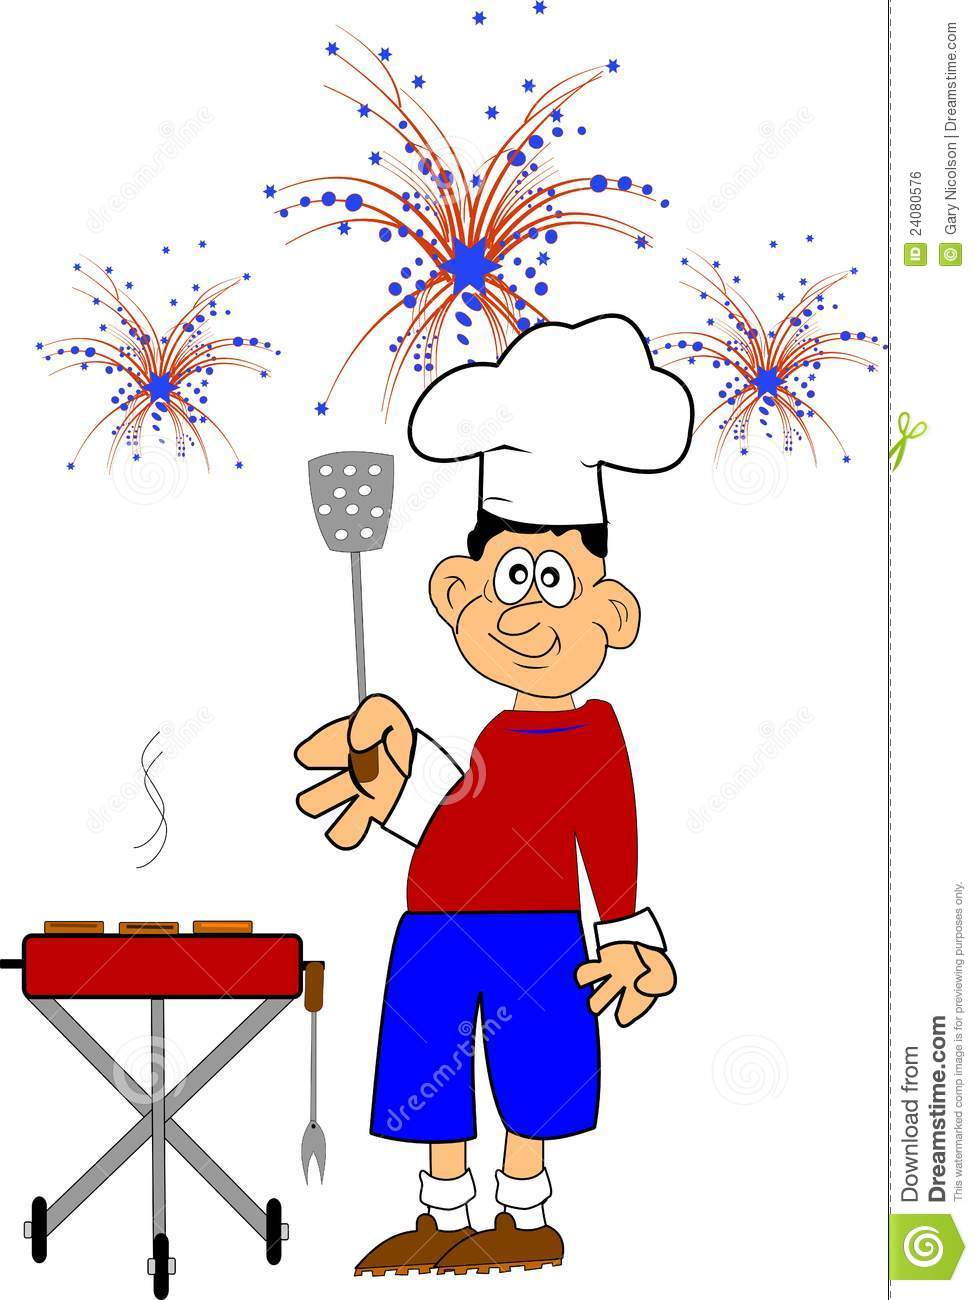 Barbecue clipart 4th july Panda Free Clipart Images Clipart